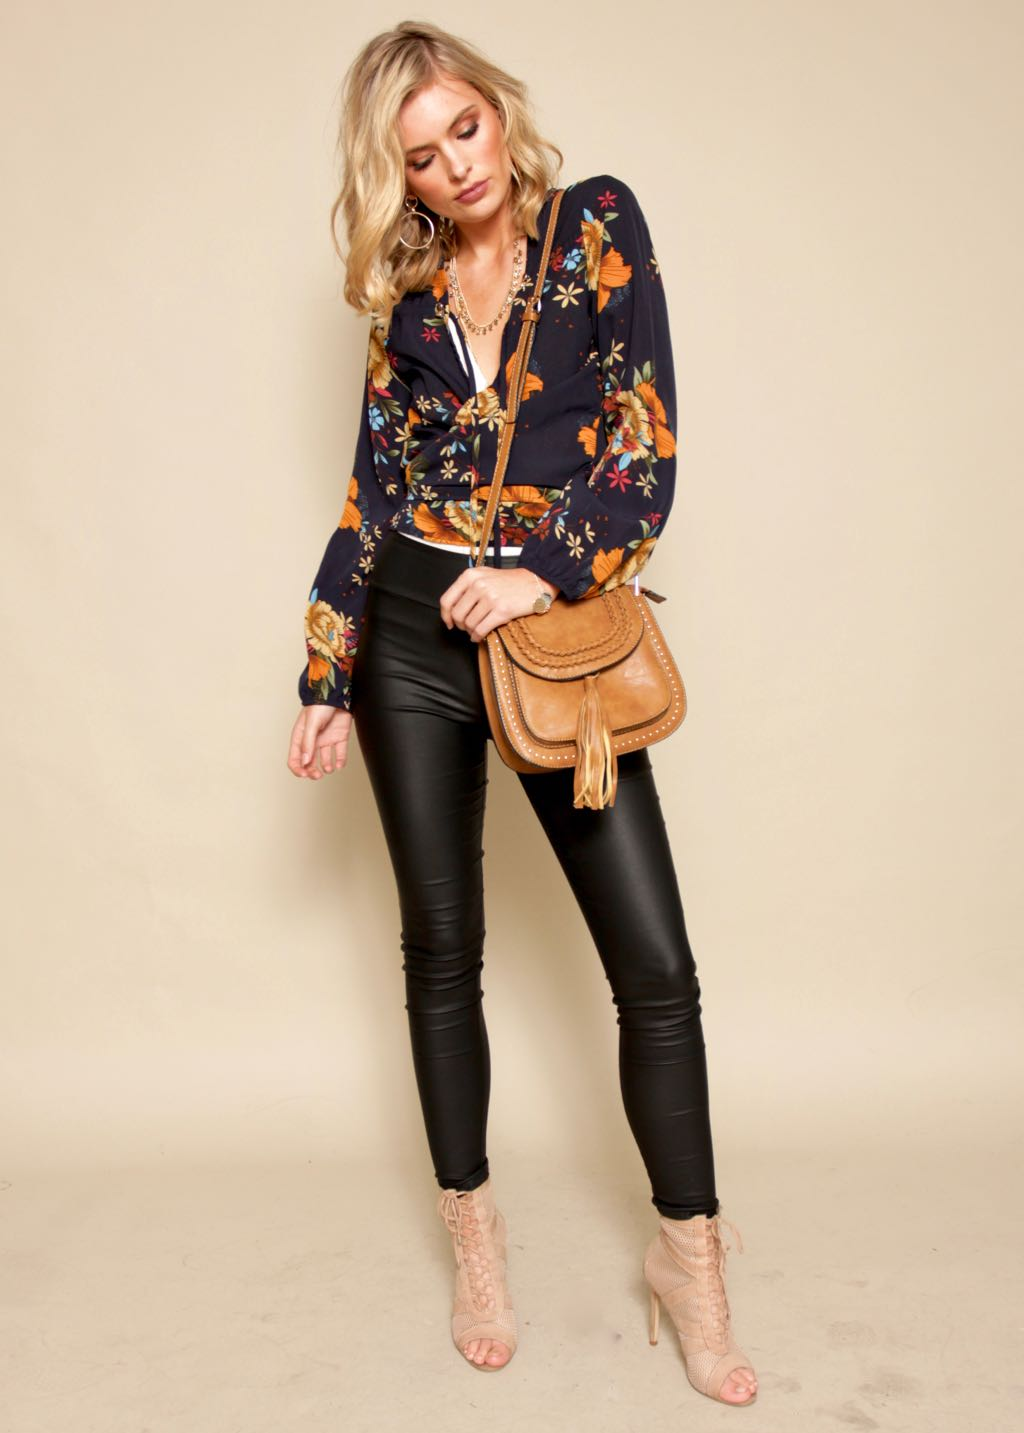 Dancing Dream Tie Blouse - Navy Floral